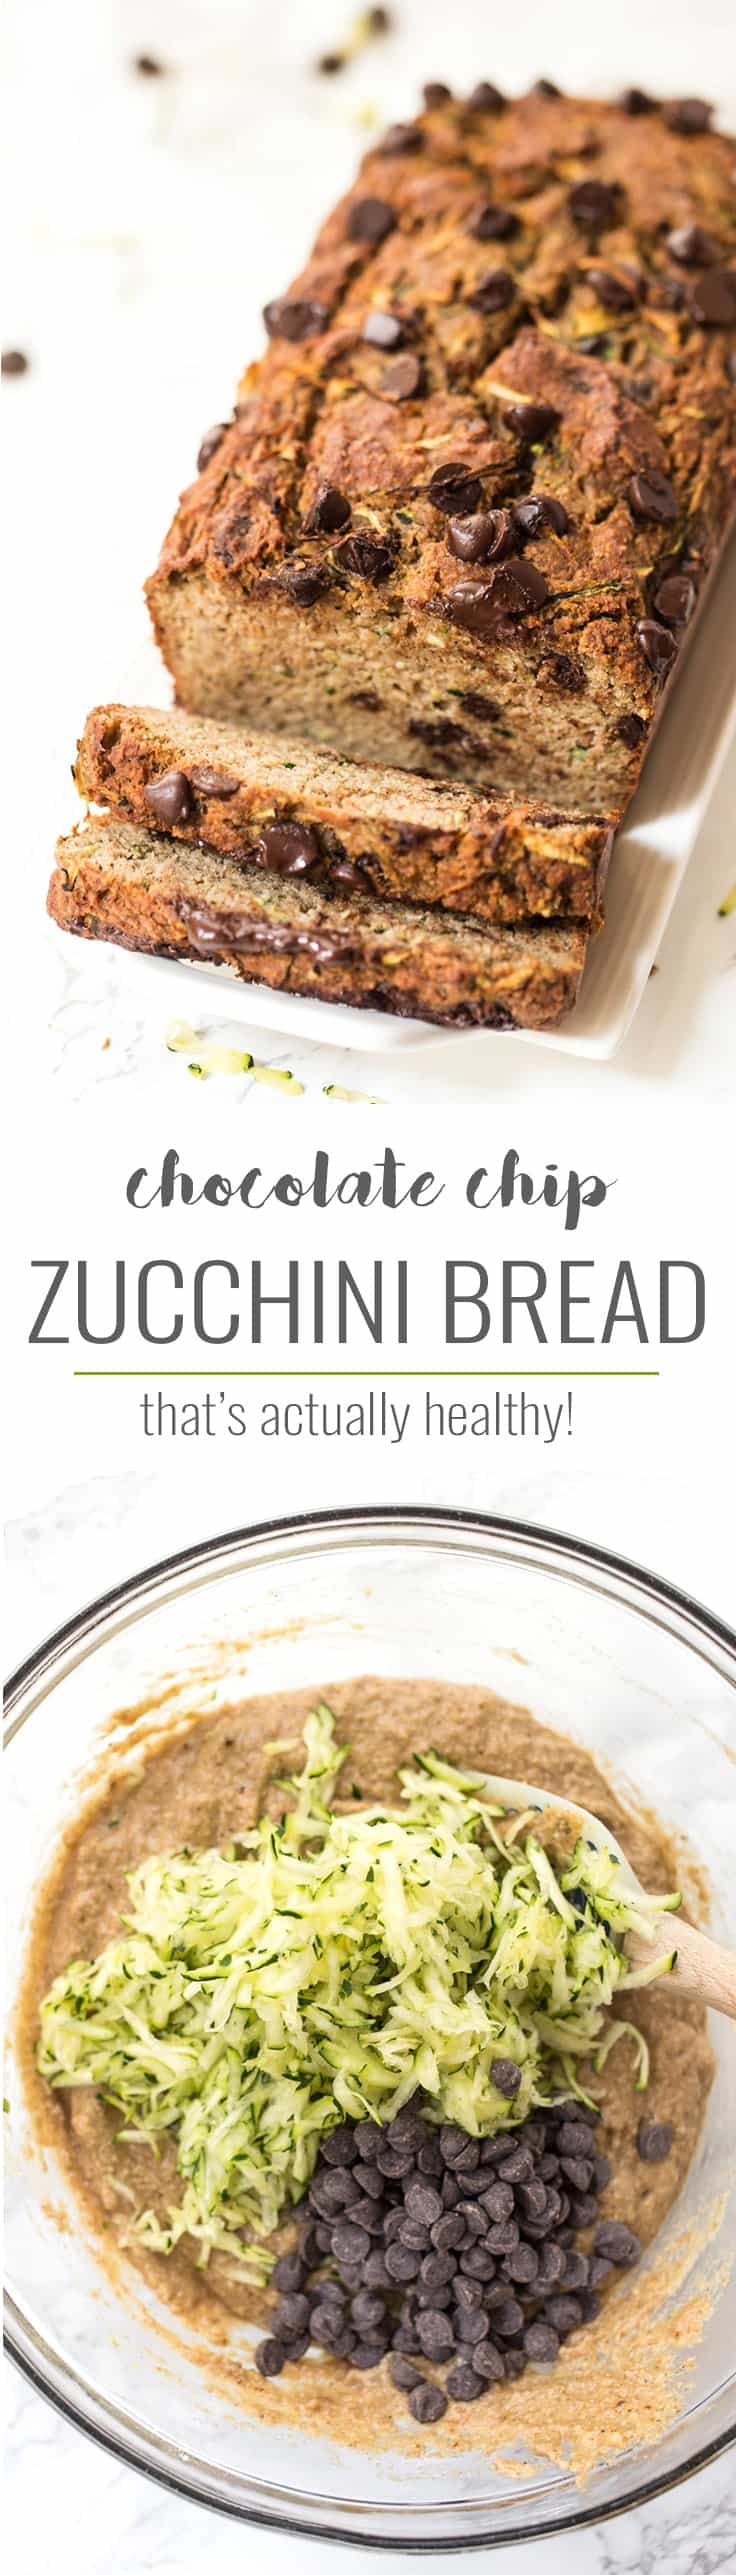 This HEALTHY Chocolate Chip Zucchini Bread recipe makes for an epic breakfast or snack! High in protein, healthy fats, complex carbs and minimally sweetened!